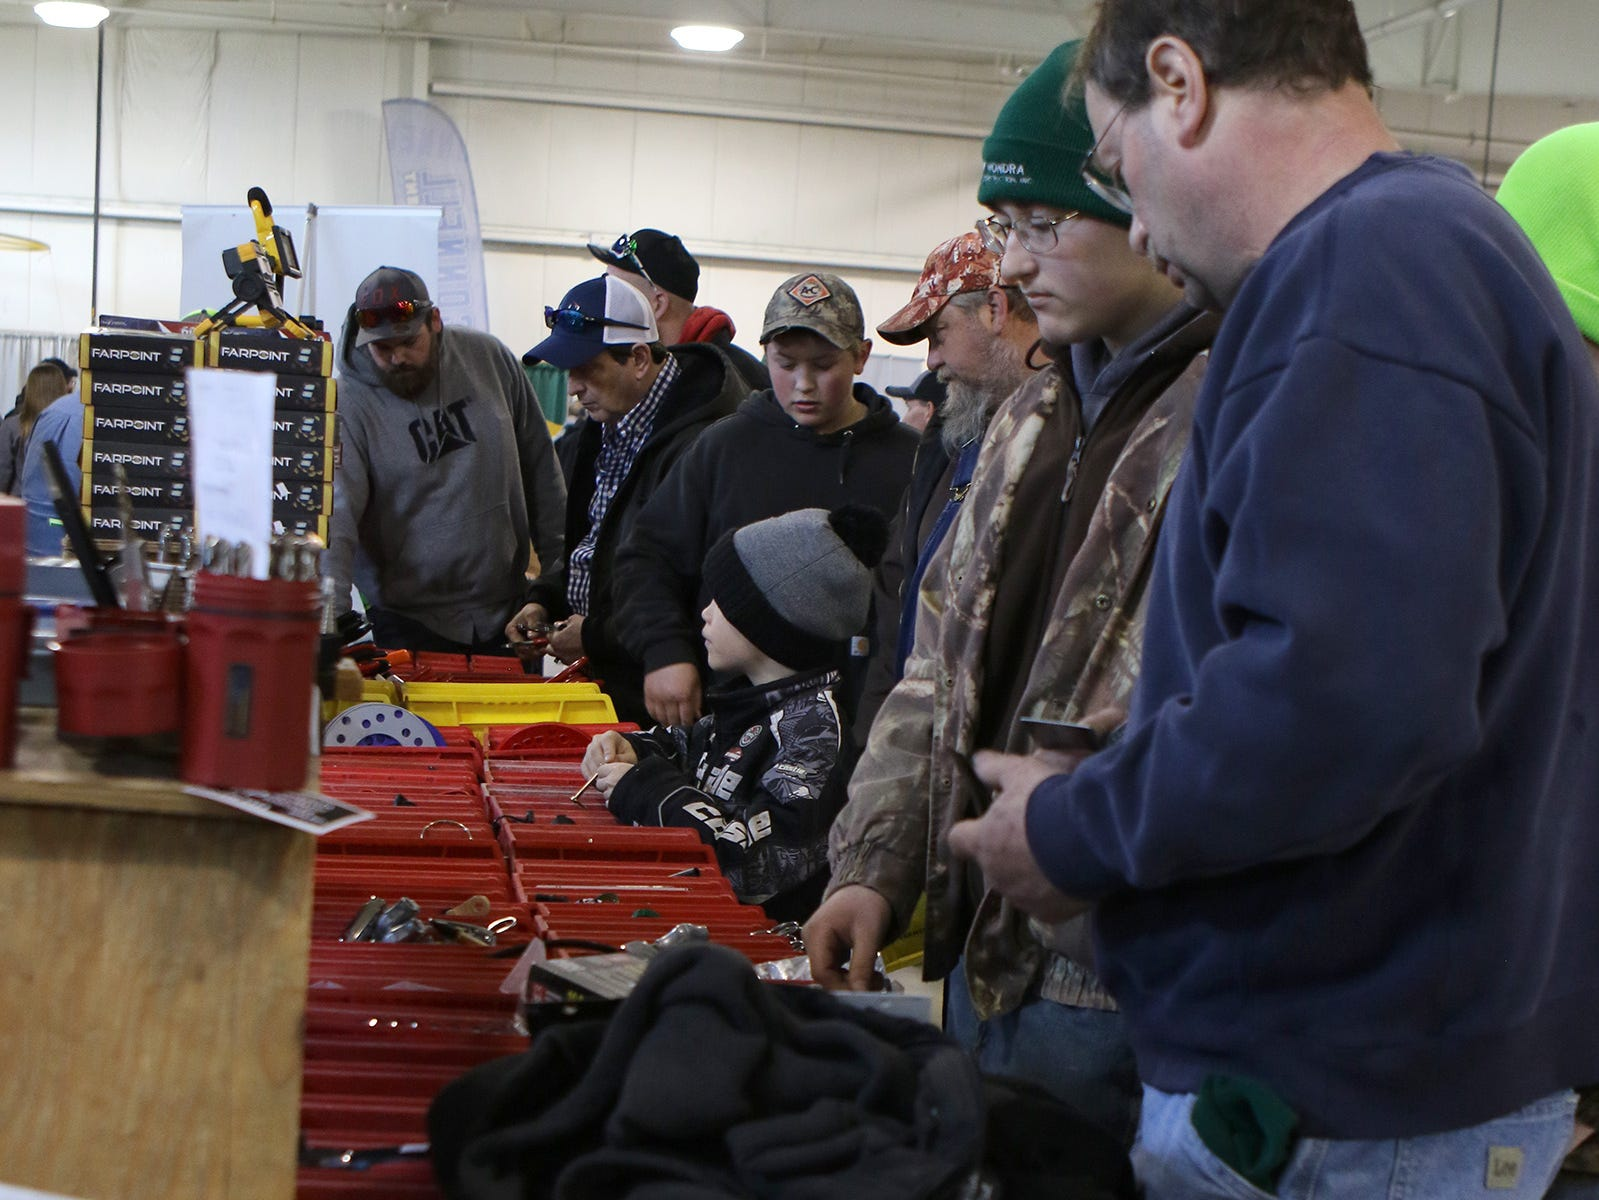 There was lots of interest in tools at the Wisconsin Public Service Farm Show on March 27 in Oshkosh.